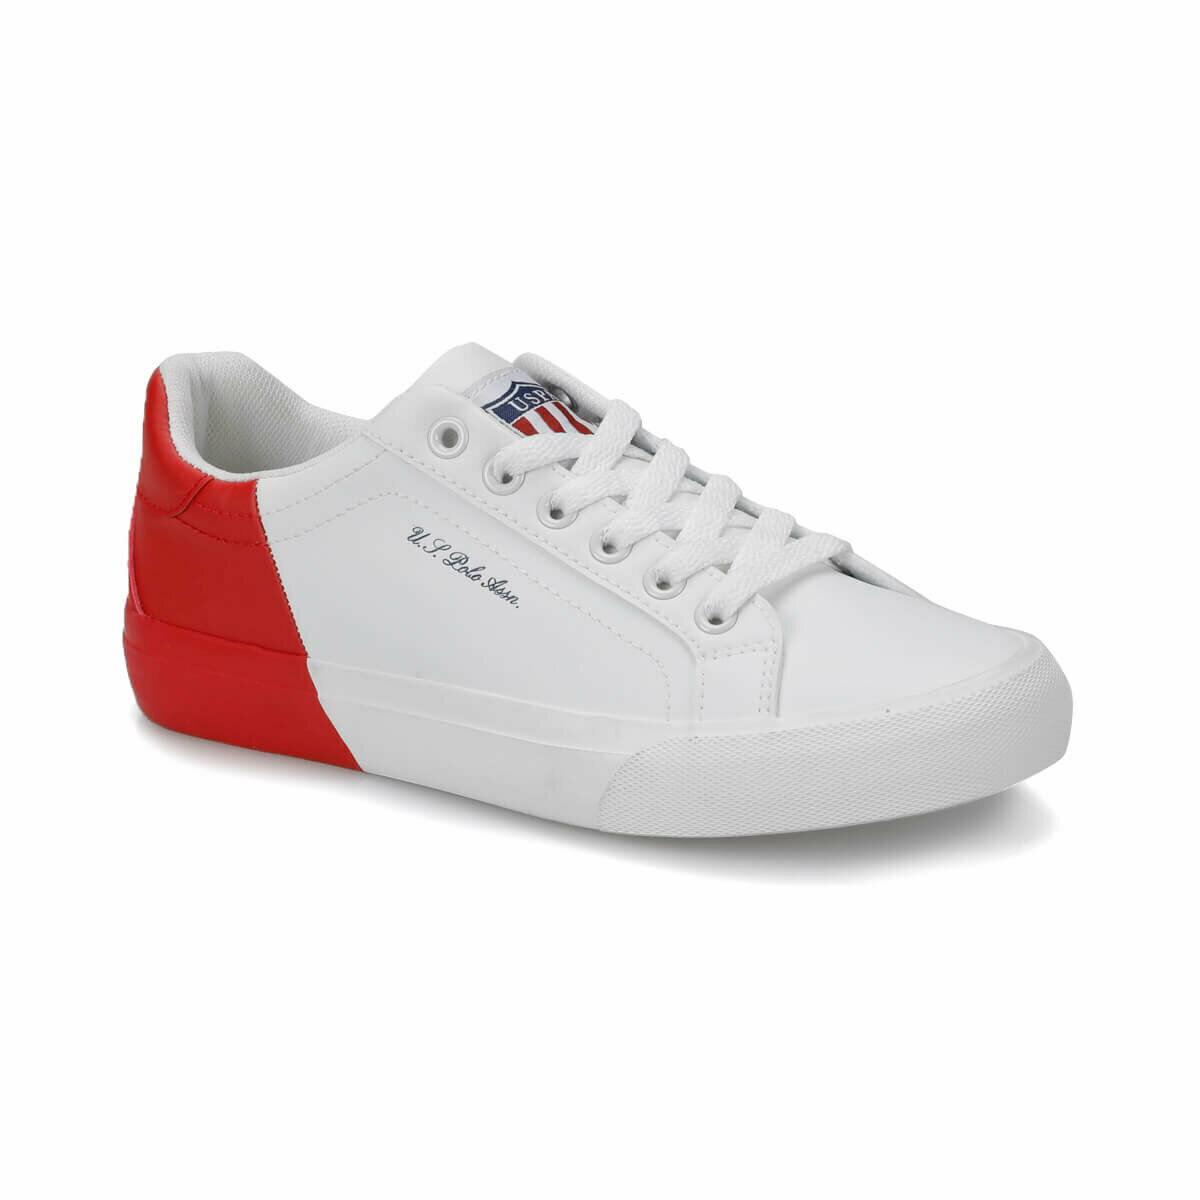 FLO LEXI White Women 'S Sneaker Shoes U.S. POLO ASSN.